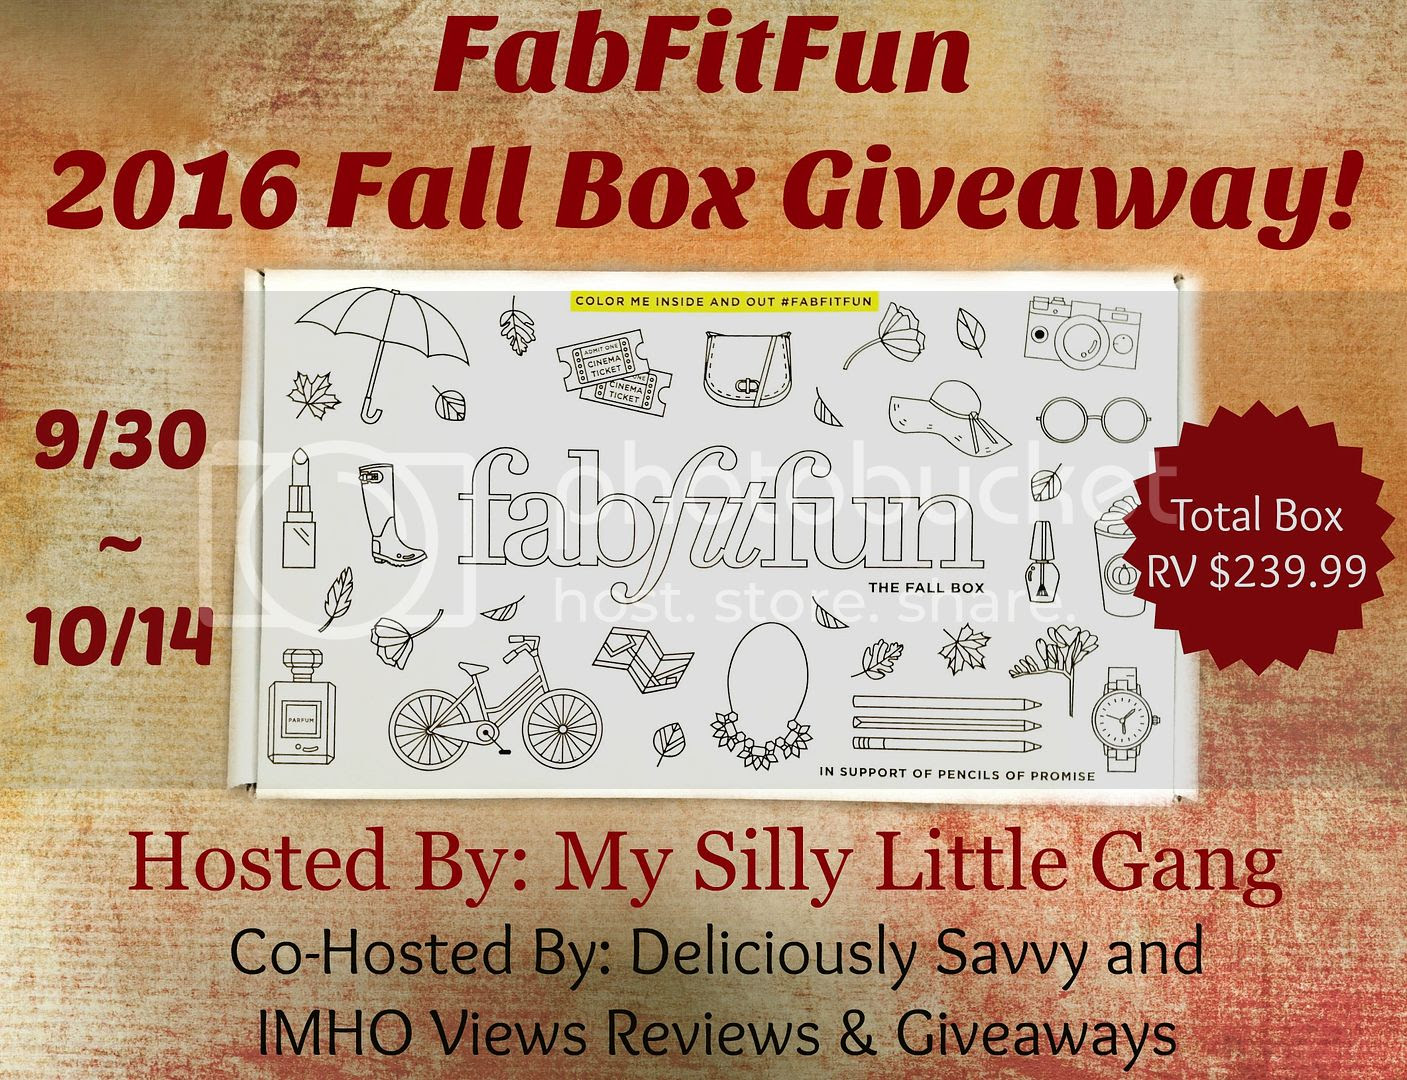 FabFitFun fall box giveaway. Ends 10/14